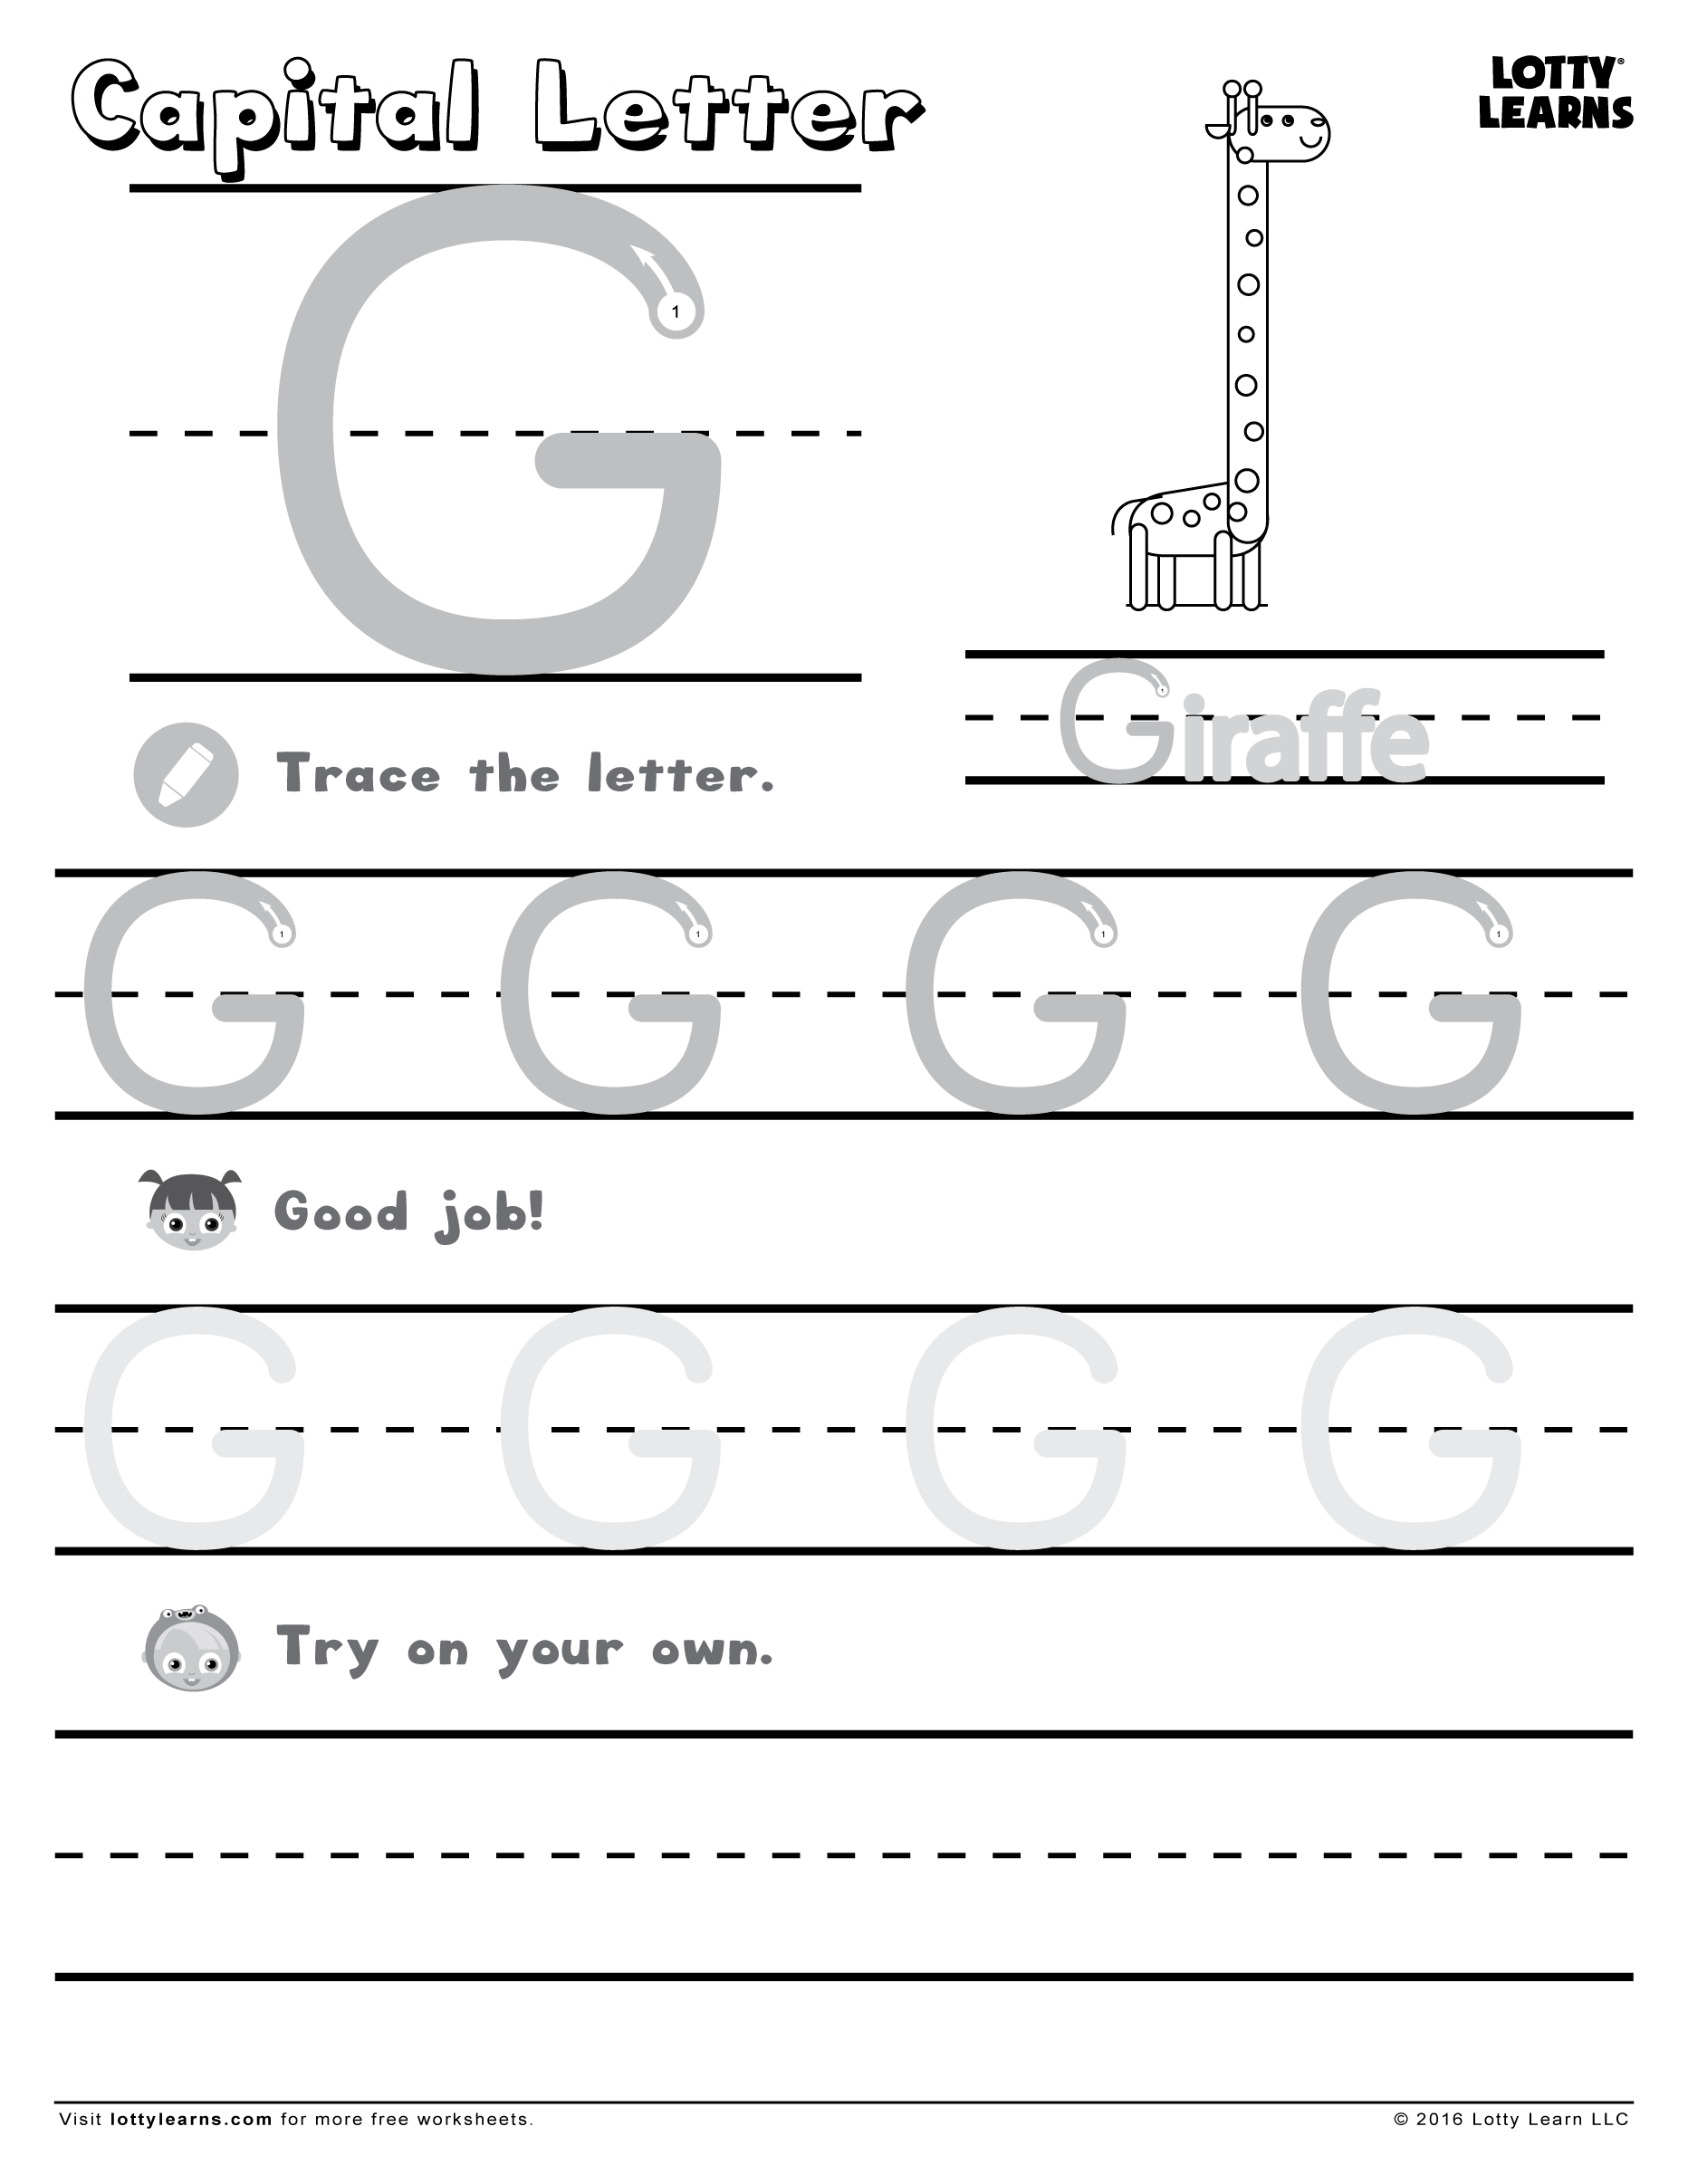 Worksheets Letter G Worksheets capital letter g lotty learns abc printables uppercase learns